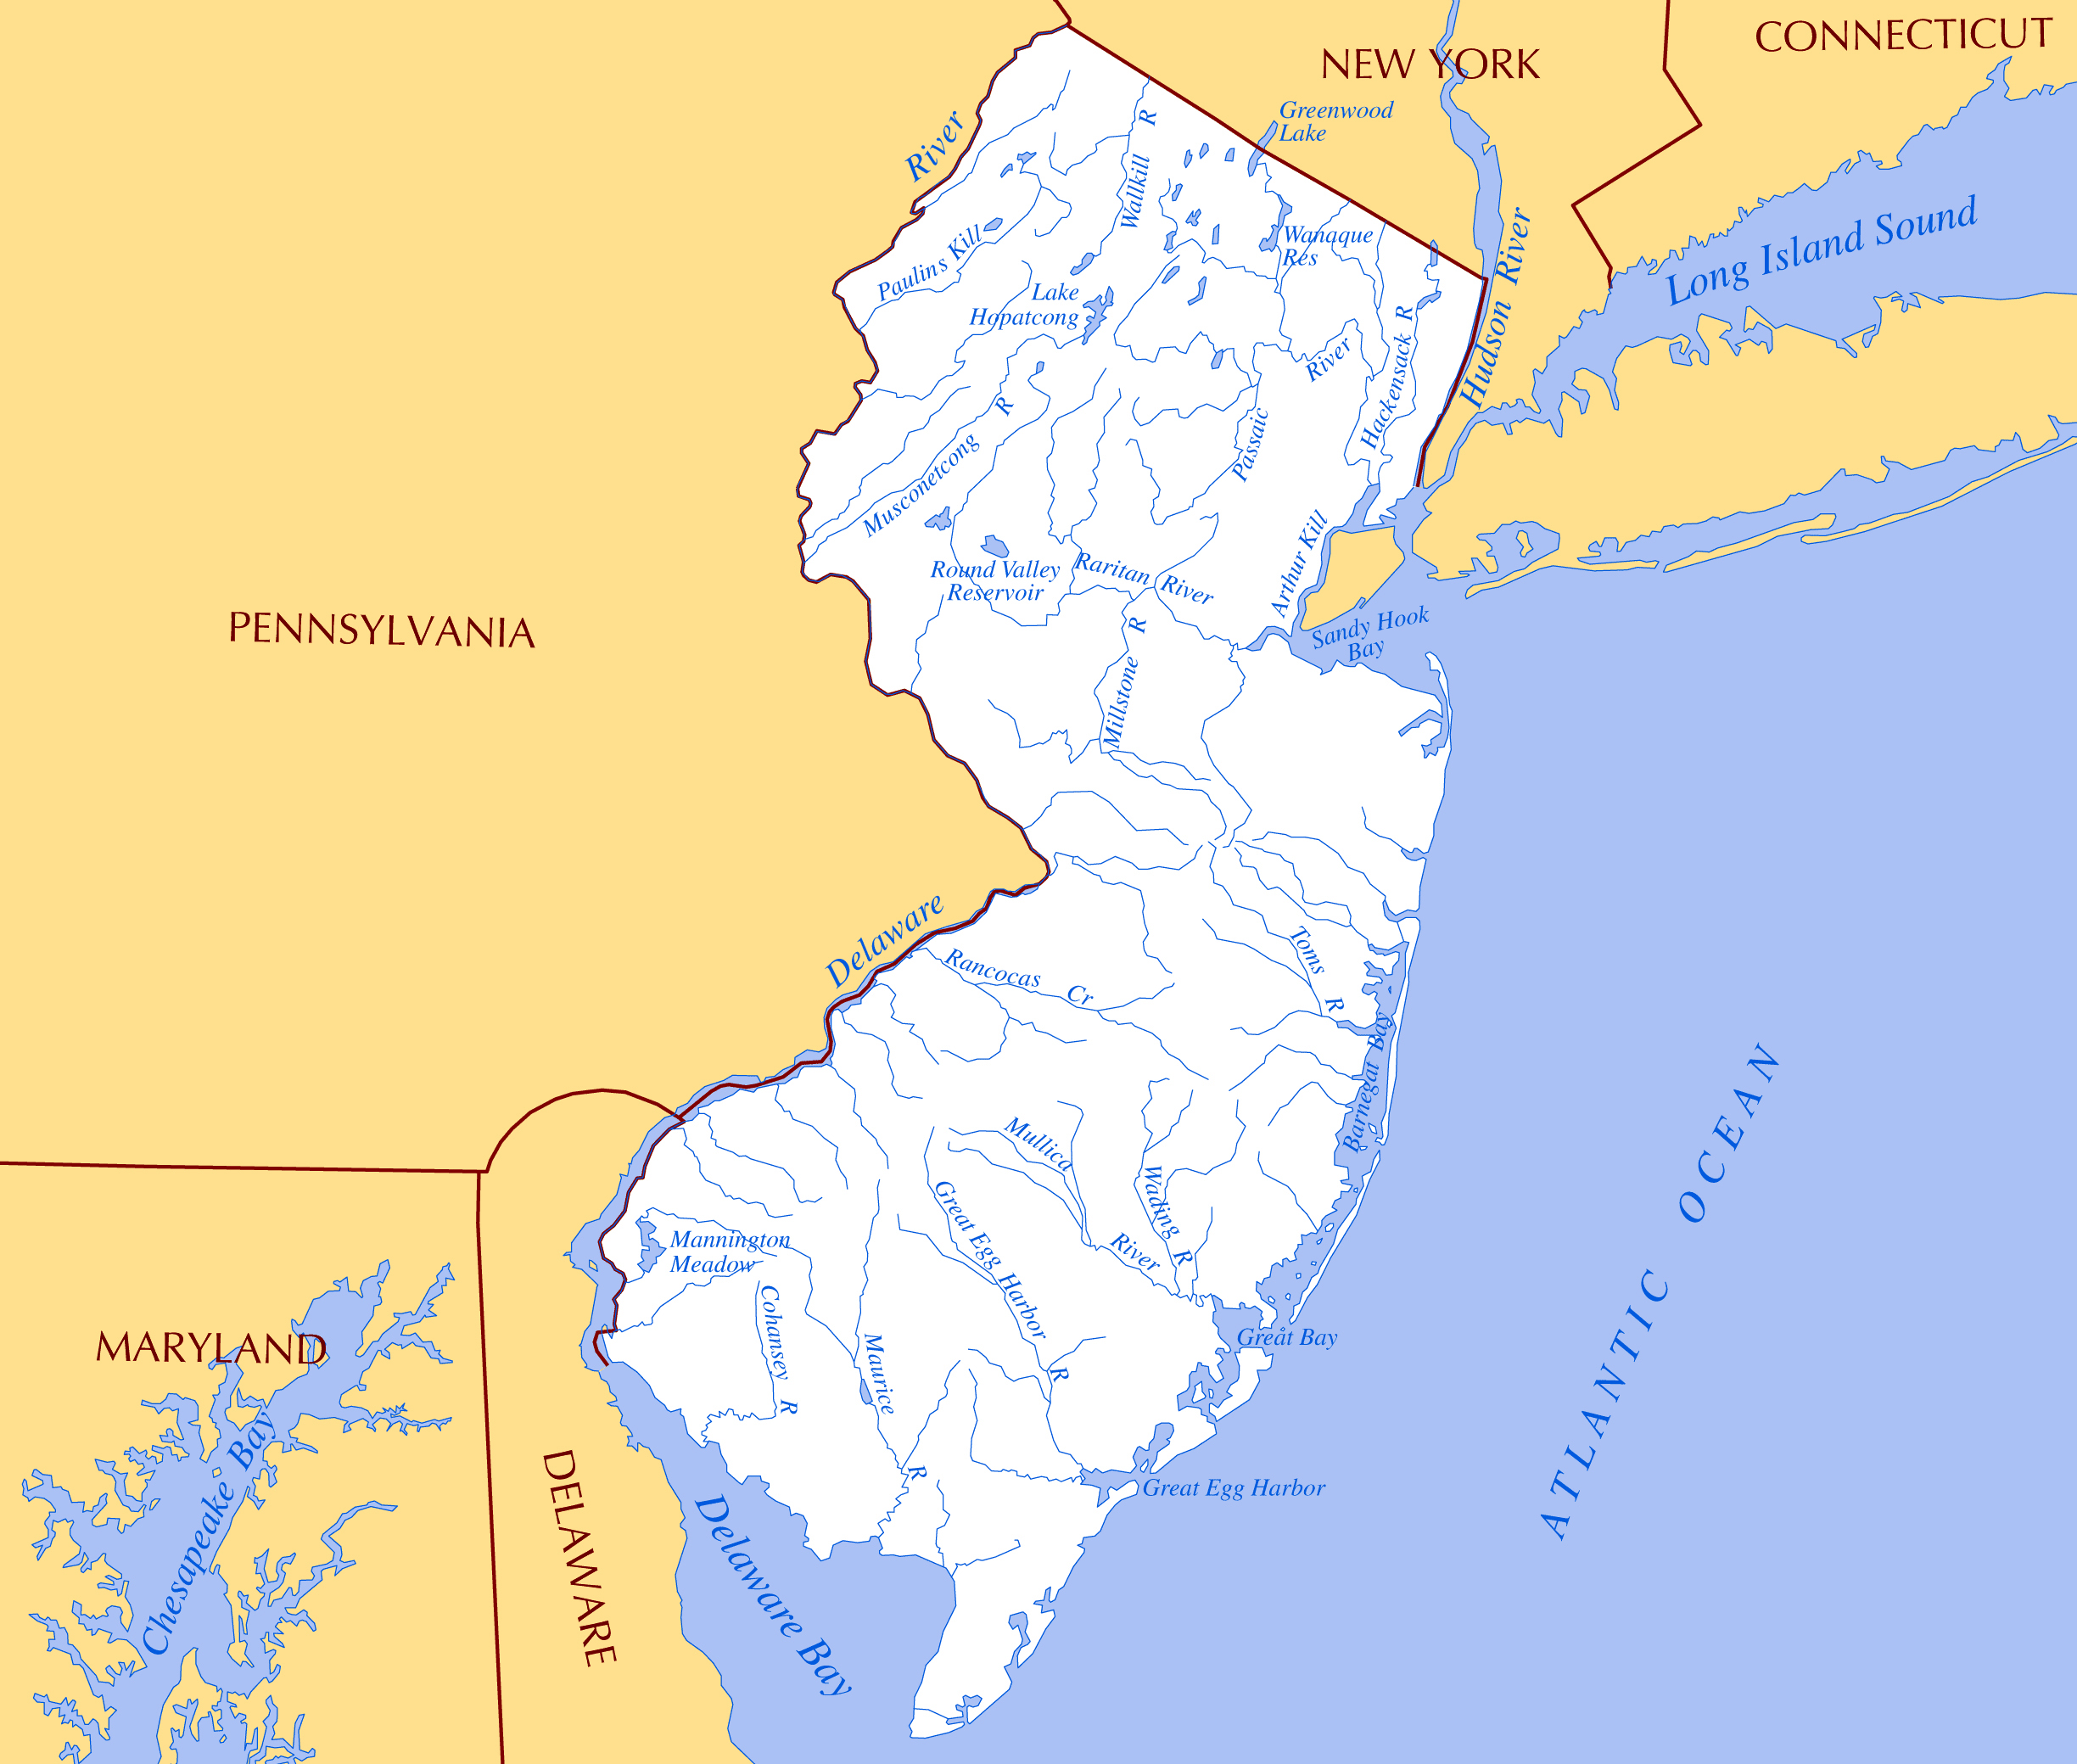 Large rivers and lakes map of New Jersey state | New Jersey ...